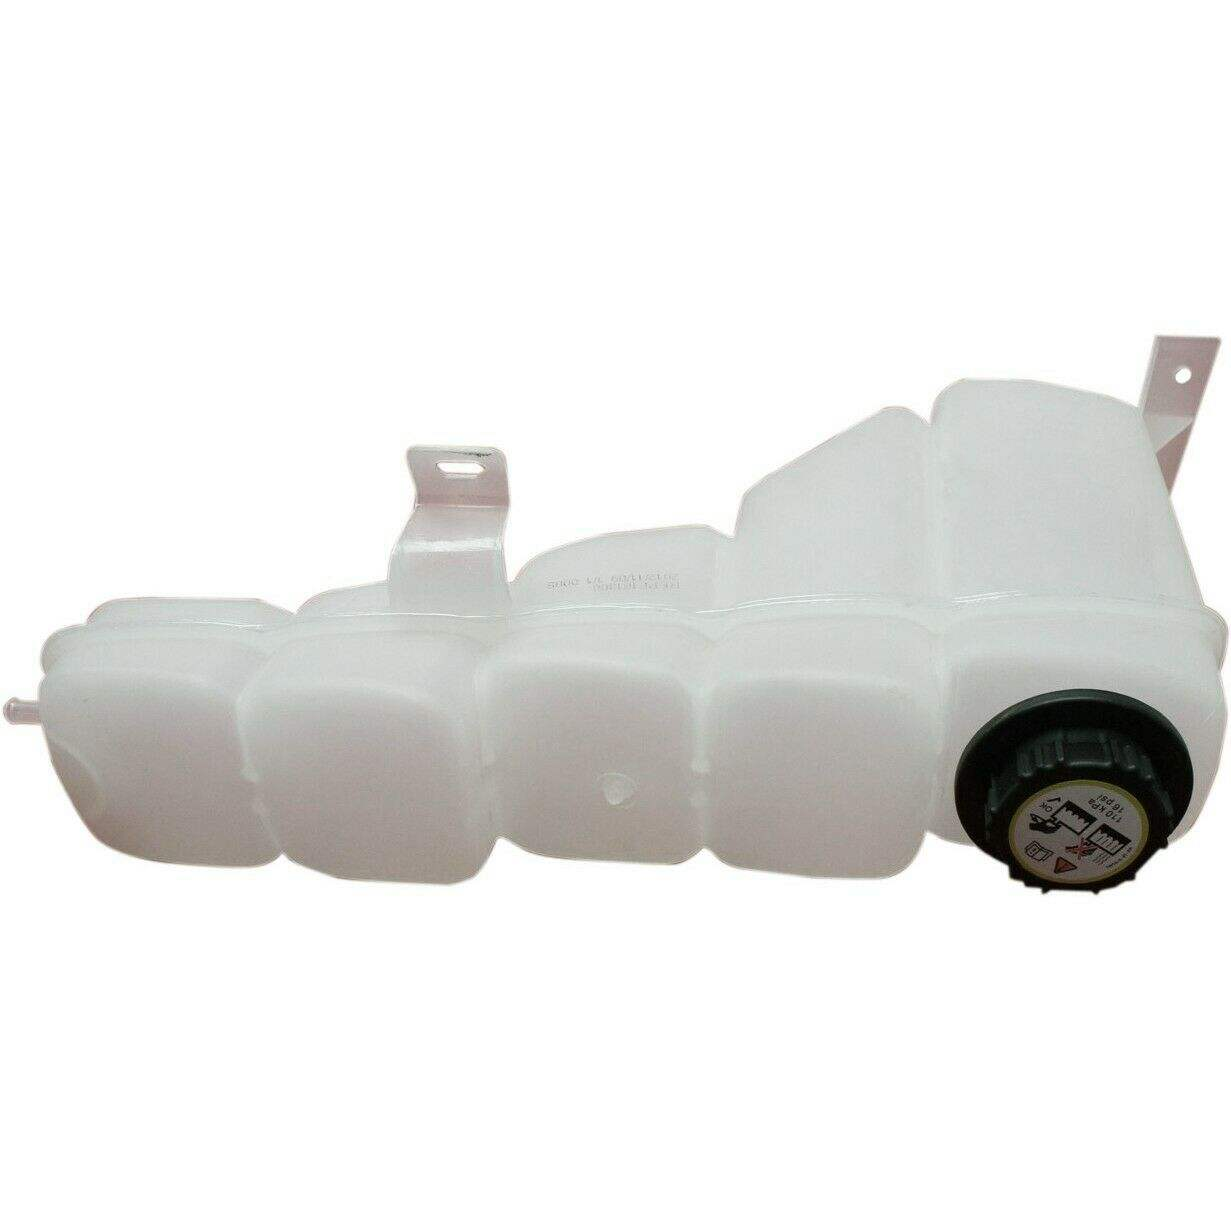 New Coolant <span class=keywords><strong>Reservoir</strong></span> F450 Truck F550 F250 F350 2C3Z8A080AA-PFM F-250 Super Duty